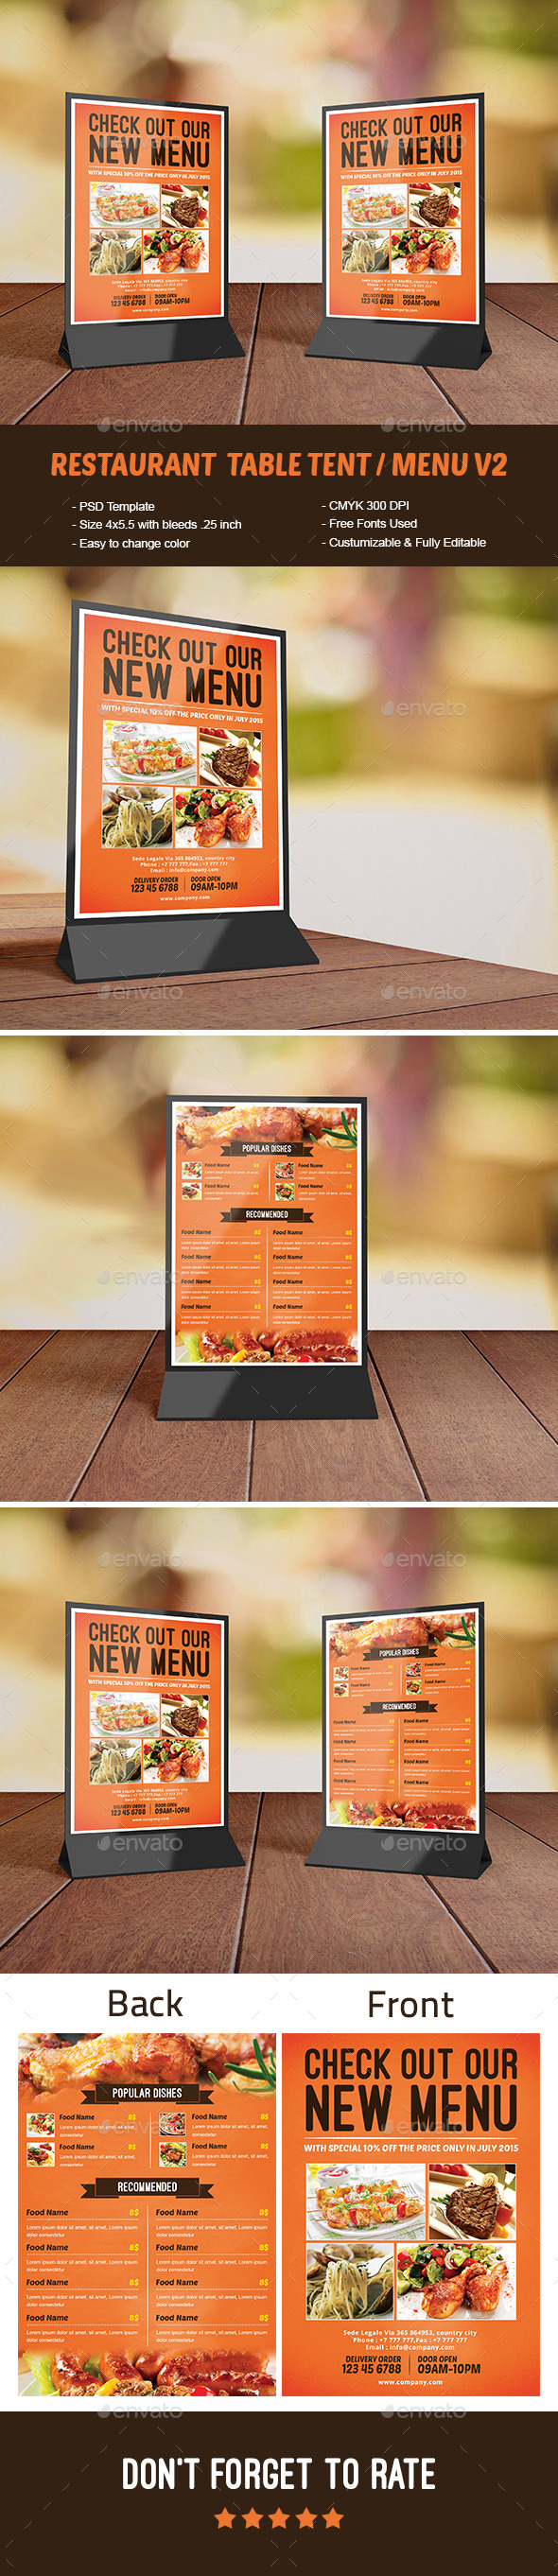 Restaurant Table Tent / Menu V2 - Food Menus Print Templates